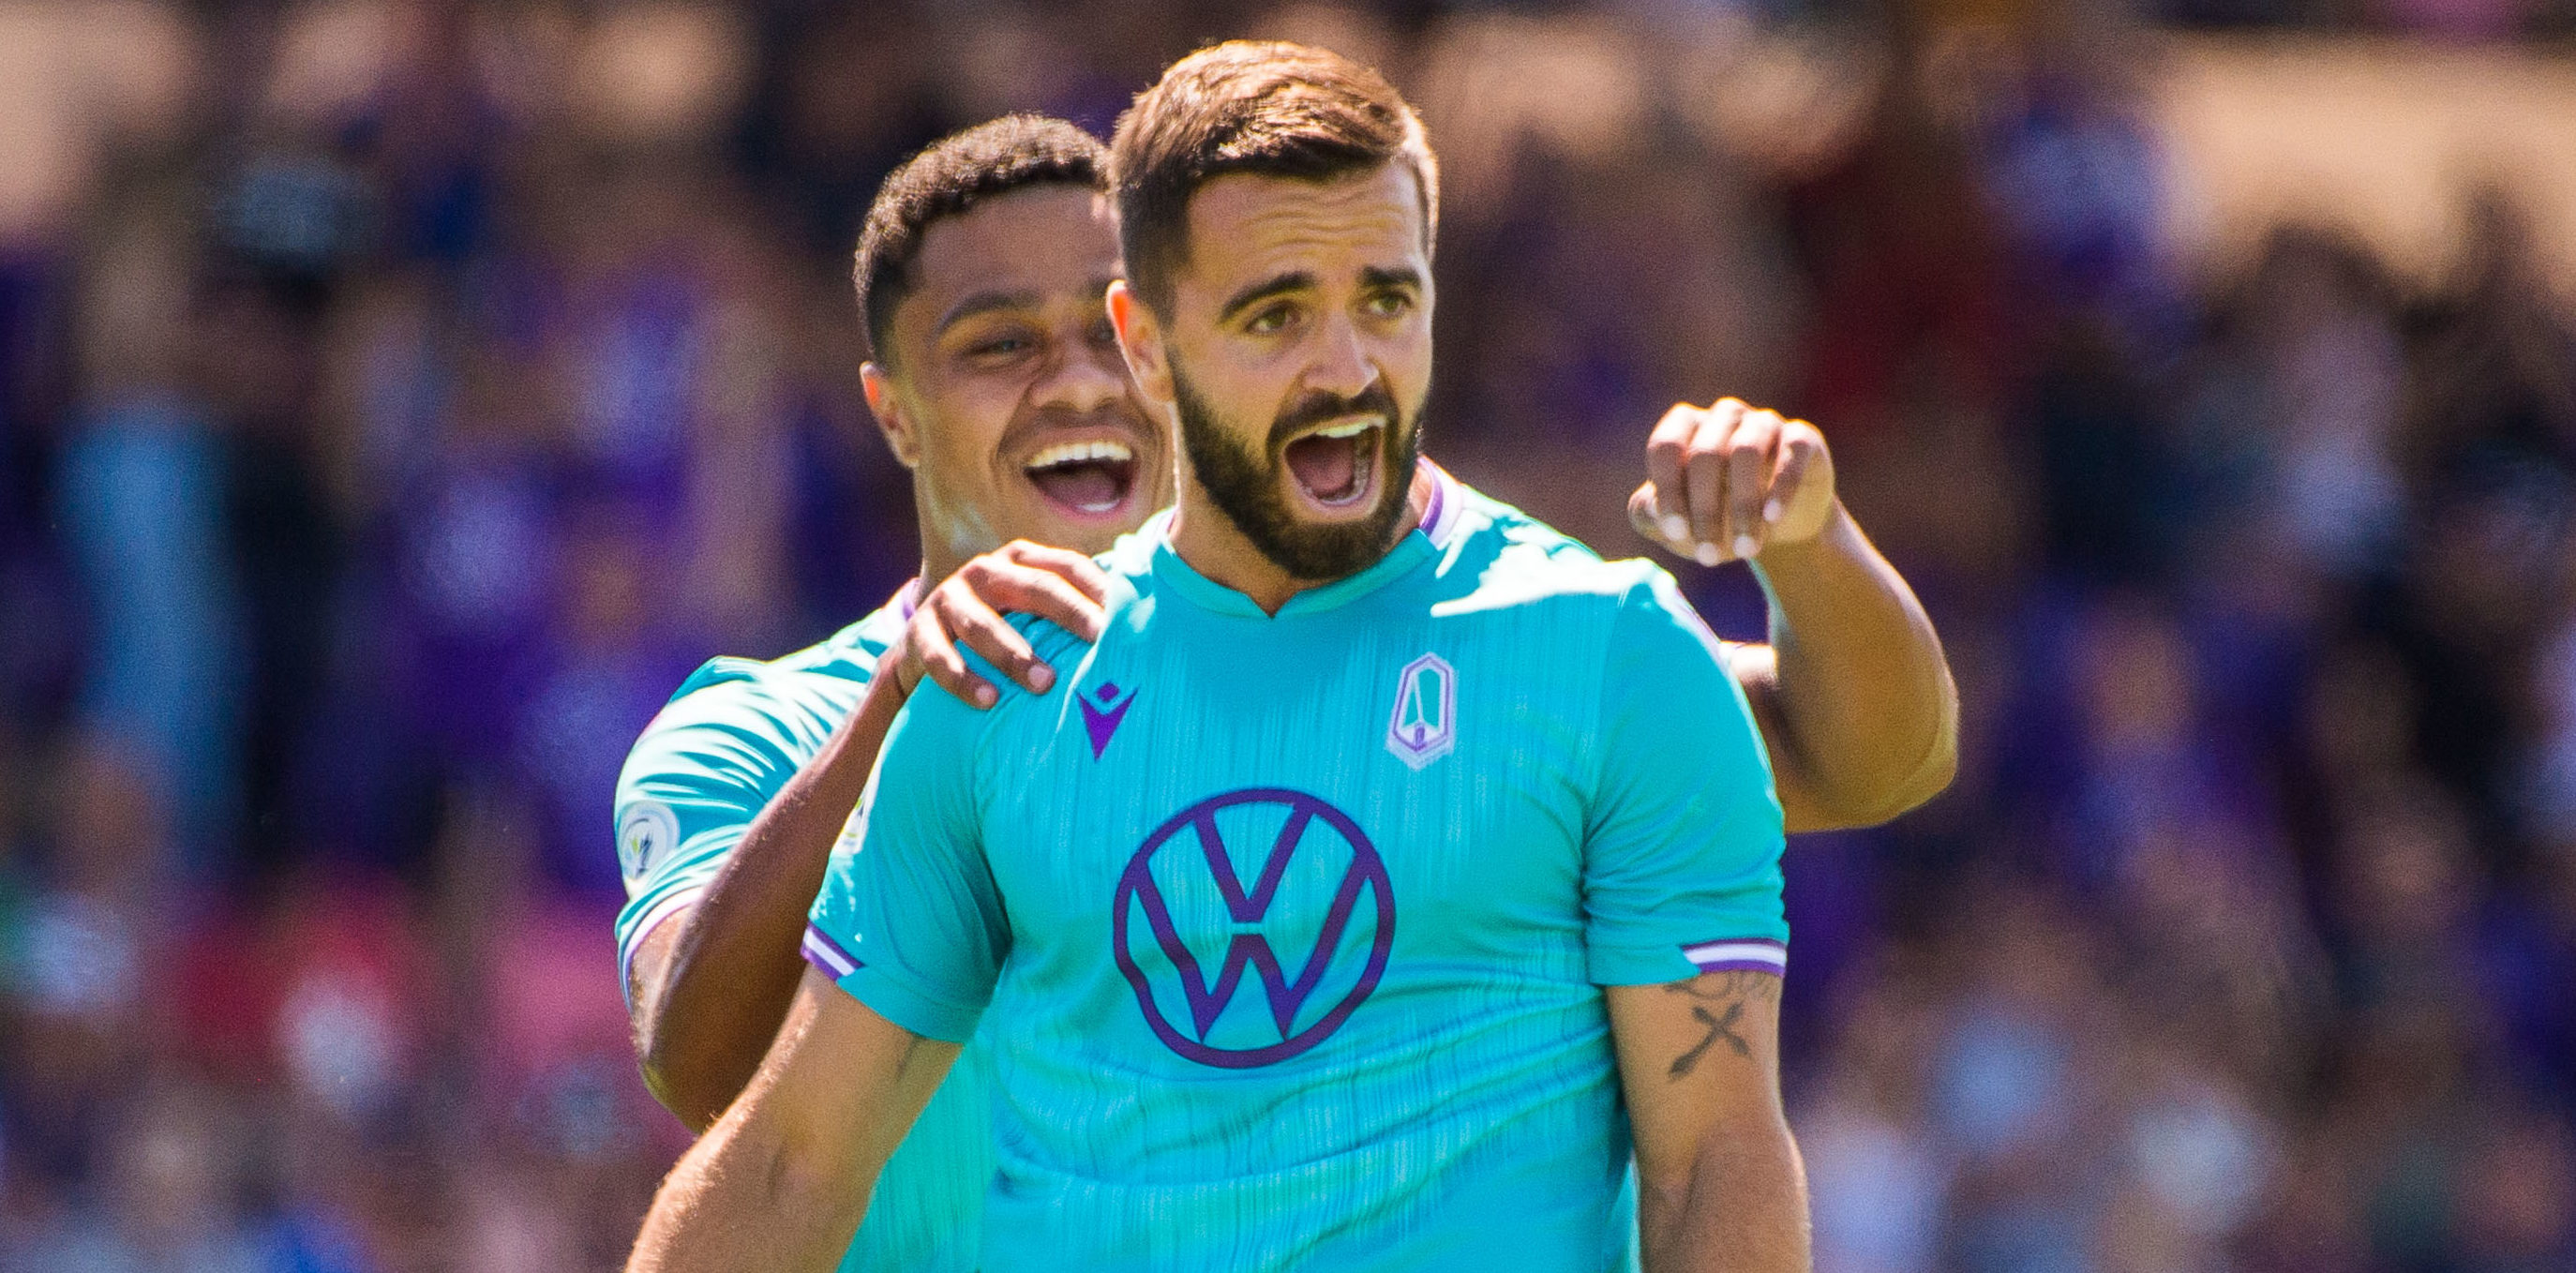 Pacific FC's Victor Blasco (23) and Terran Campbell celebrates goals over HFX at Westhills Stadium. (Photo: Pacific FC).